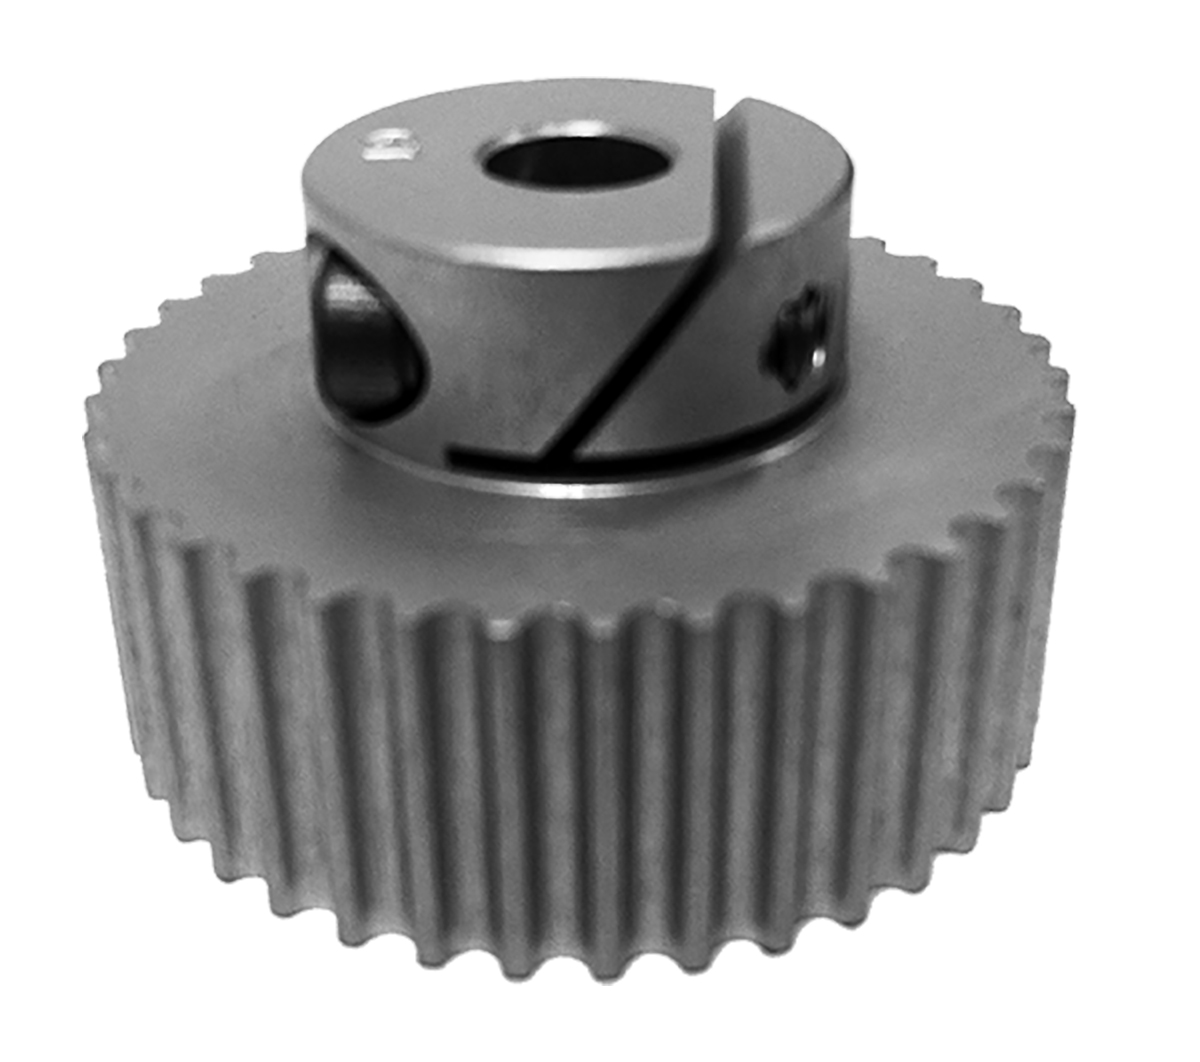 25-3P09MIA6 - E-Z Lock Hub Aluminum Powerhouse® Pulleys